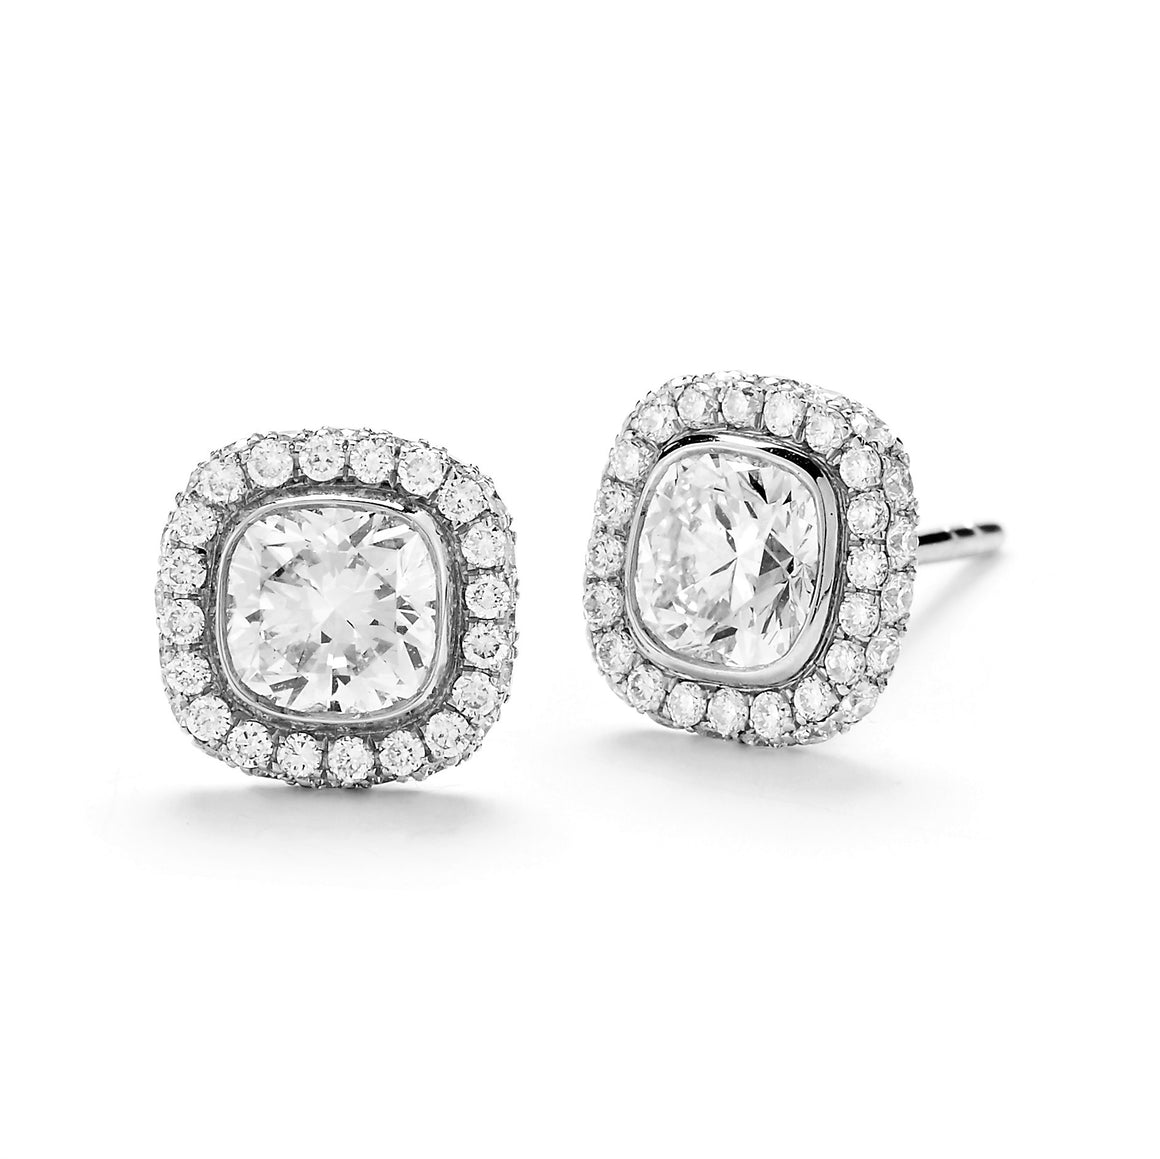 18k White Gold Cushion-Cut Diamond Halo Stud Earrings